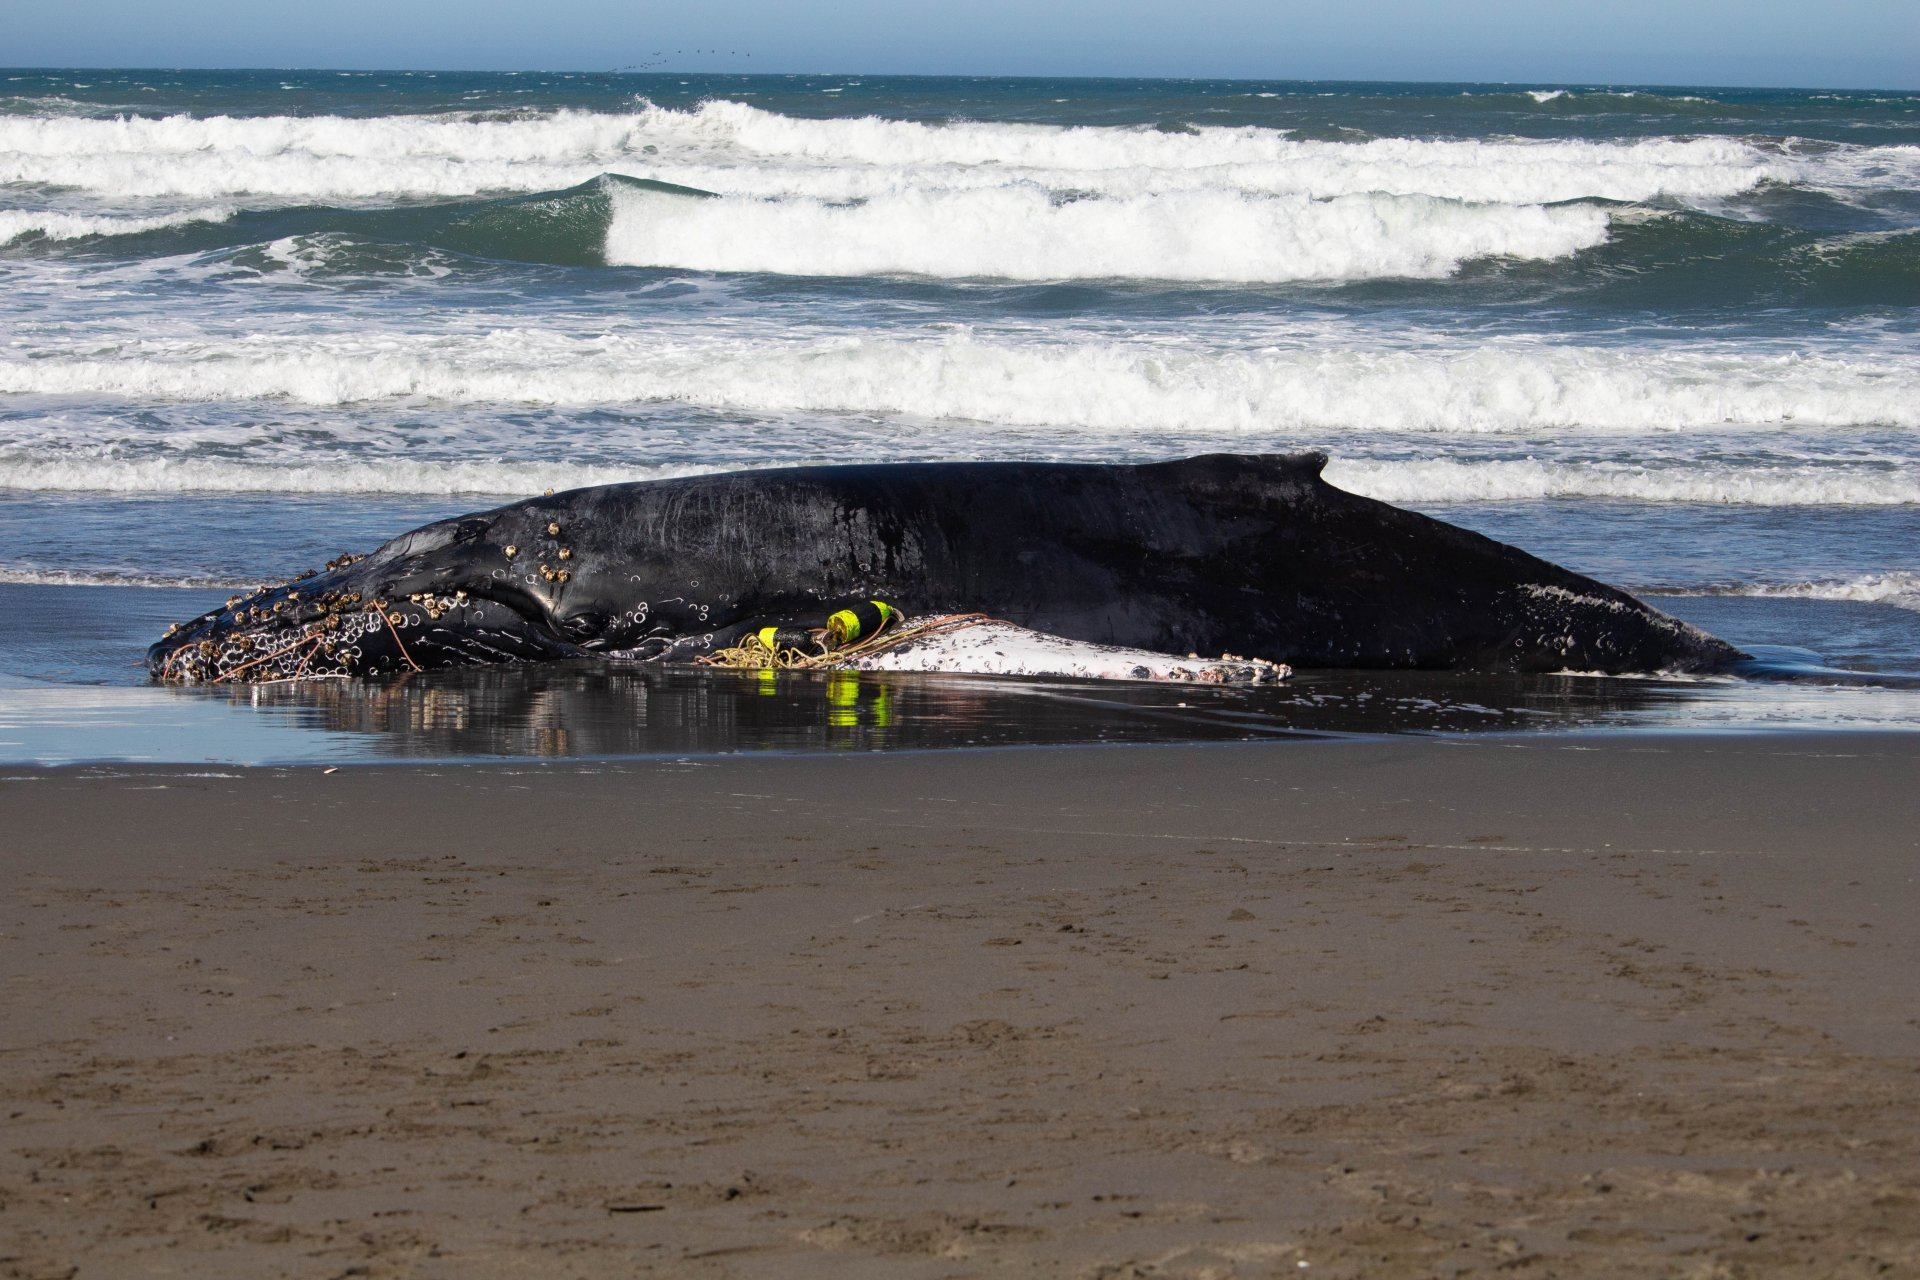 A beached whale sits stuck on the beach of the Samoa Peninsula on Oct. 23. | Photo by Thomas Lal